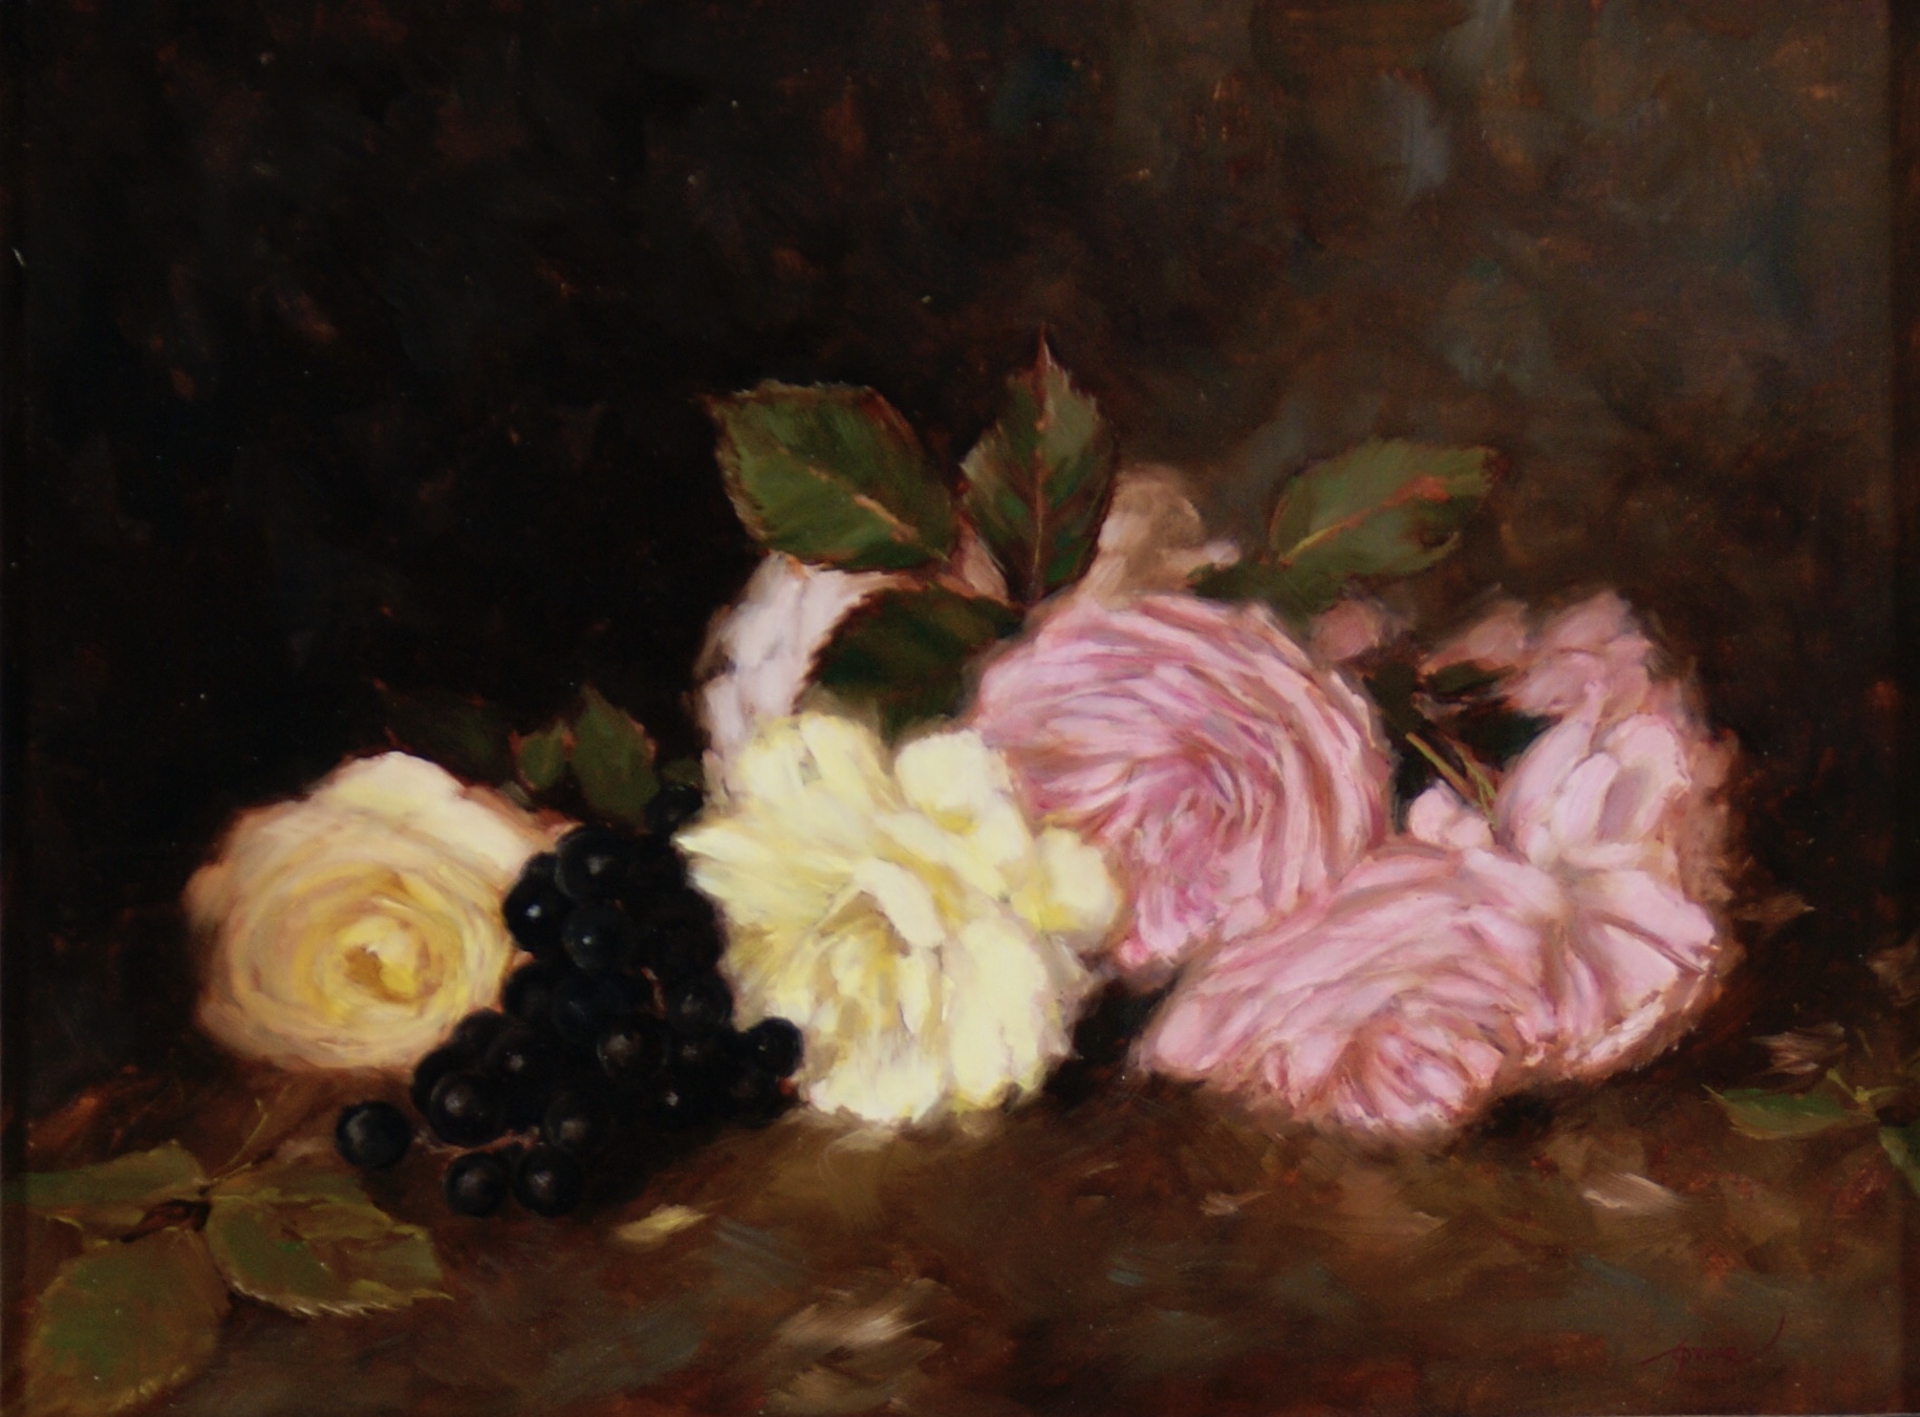 Roses with Grapes by Carla Paine